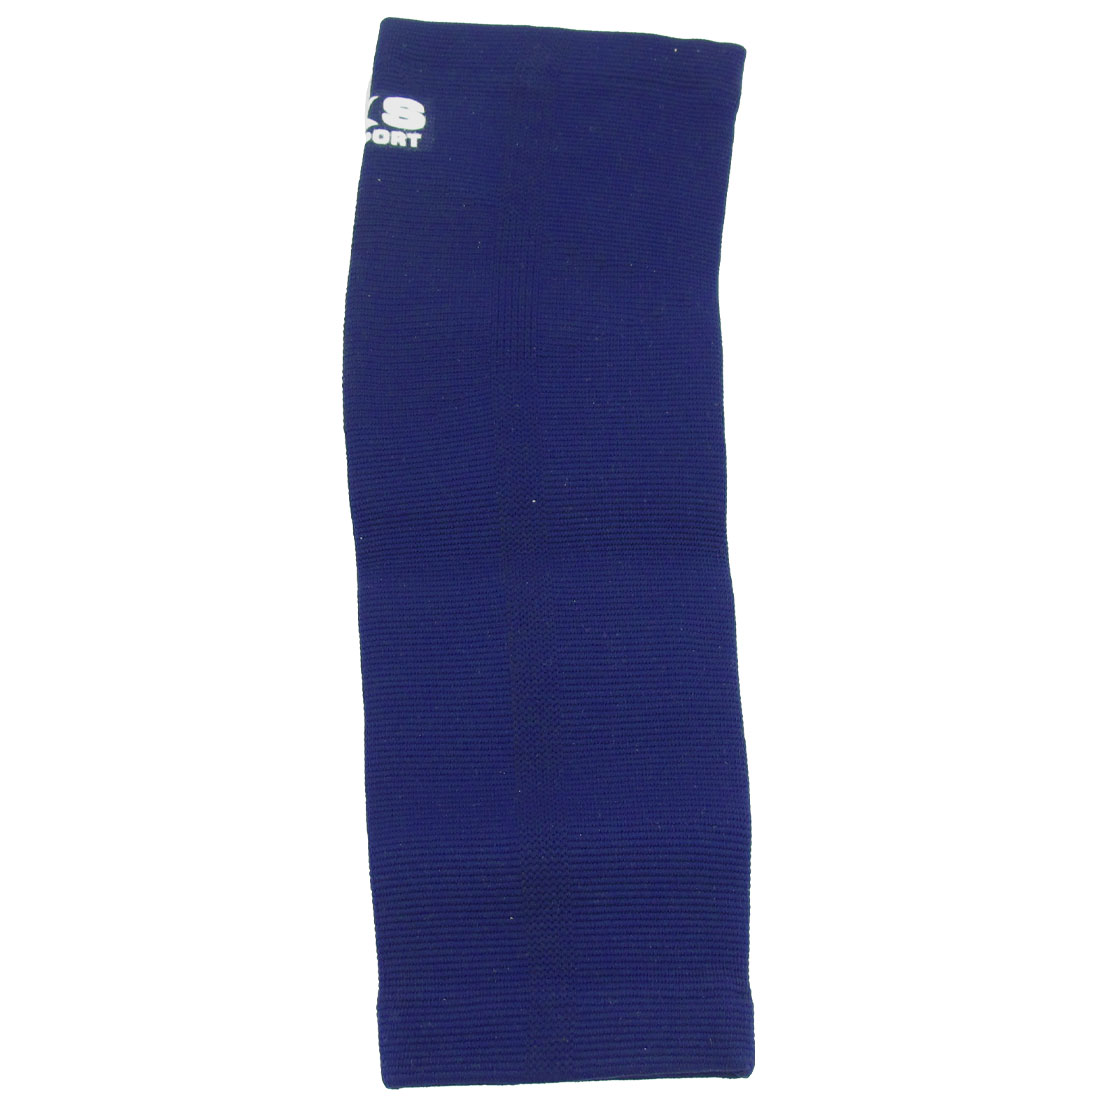 Stretch Navy Blue Pull Over Sleeve Elbow Support Protector